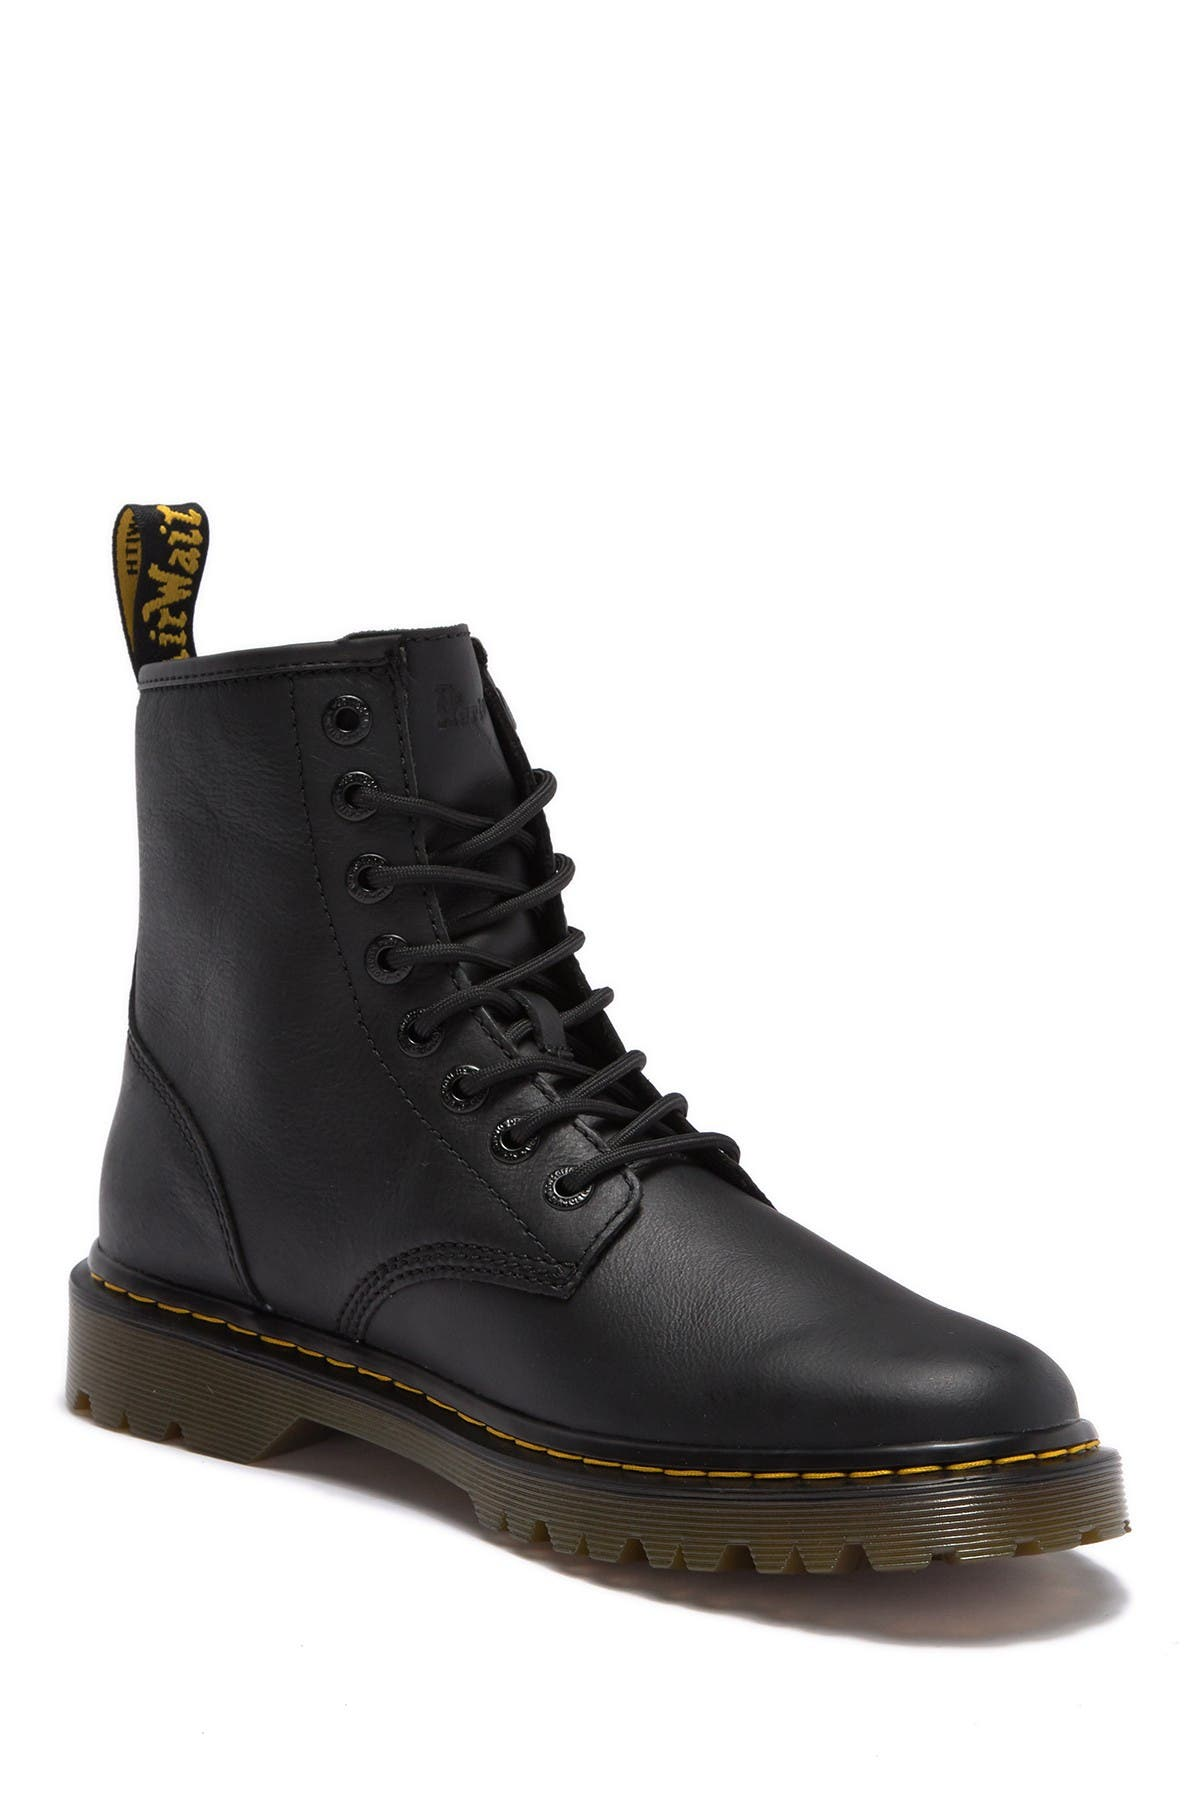 Image of Dr. Martens Awley Leather Boot